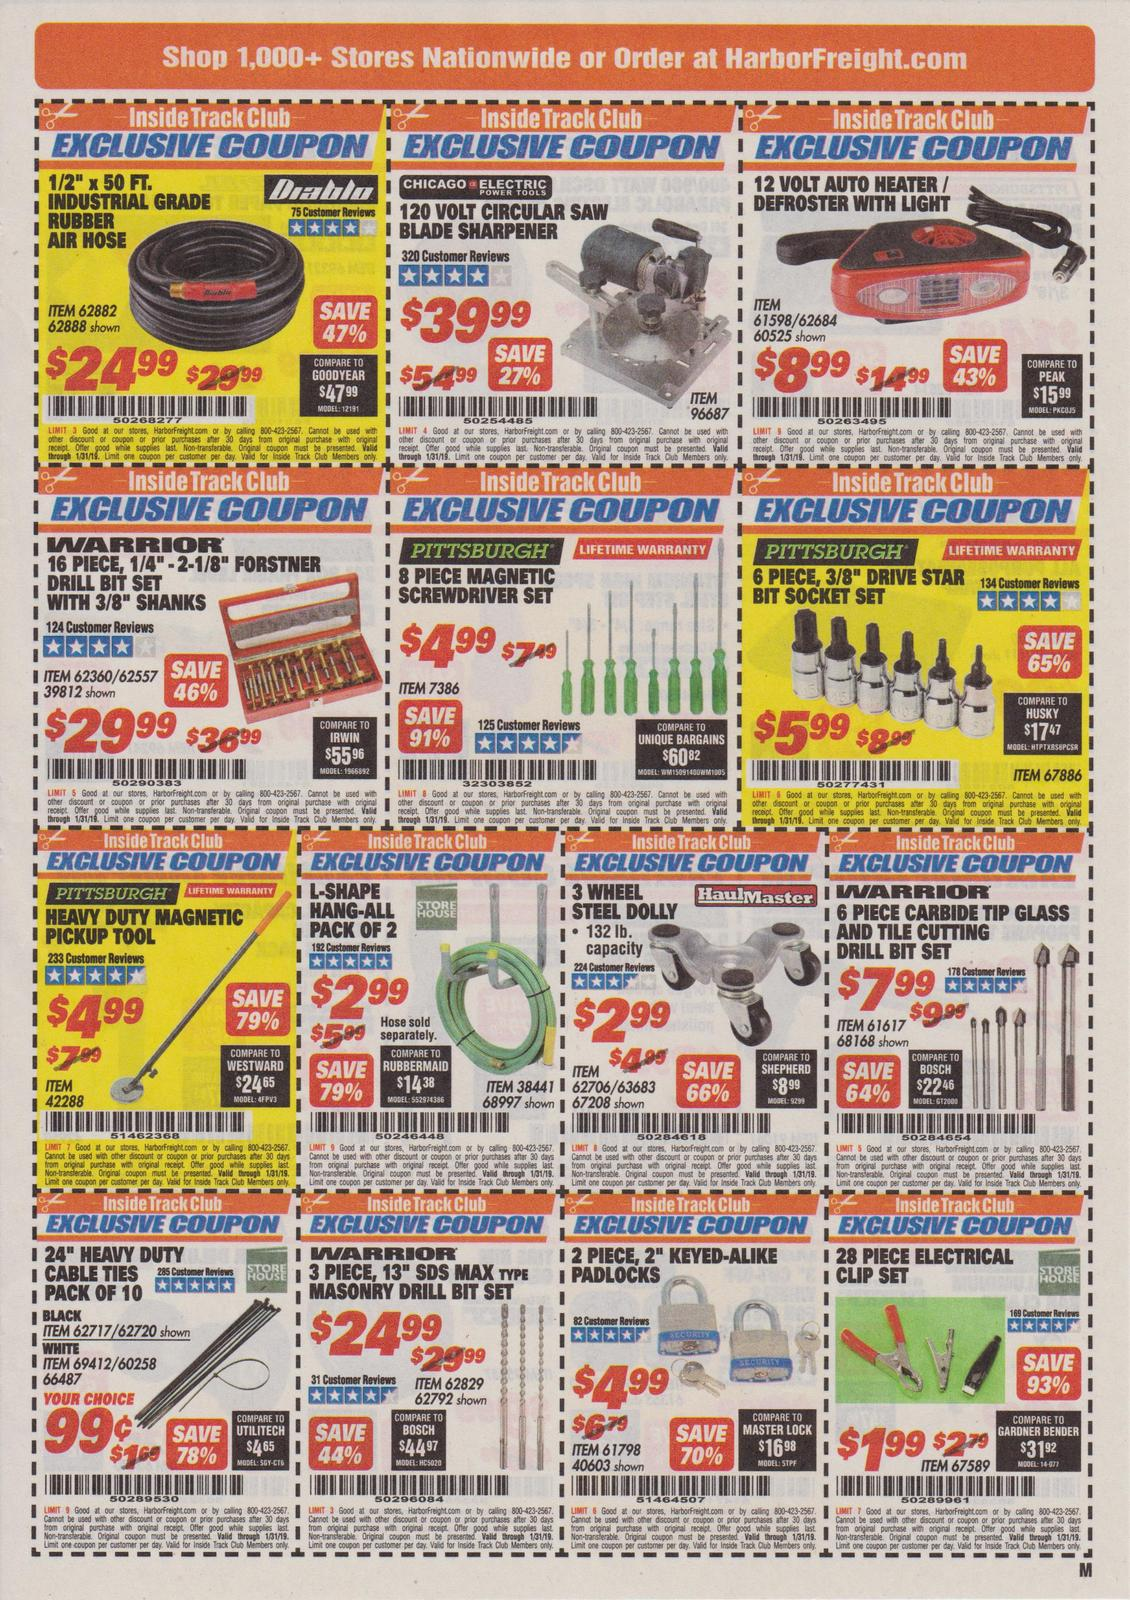 Harbor Freight Inside Track Club Coupons January 2019 Struggleville